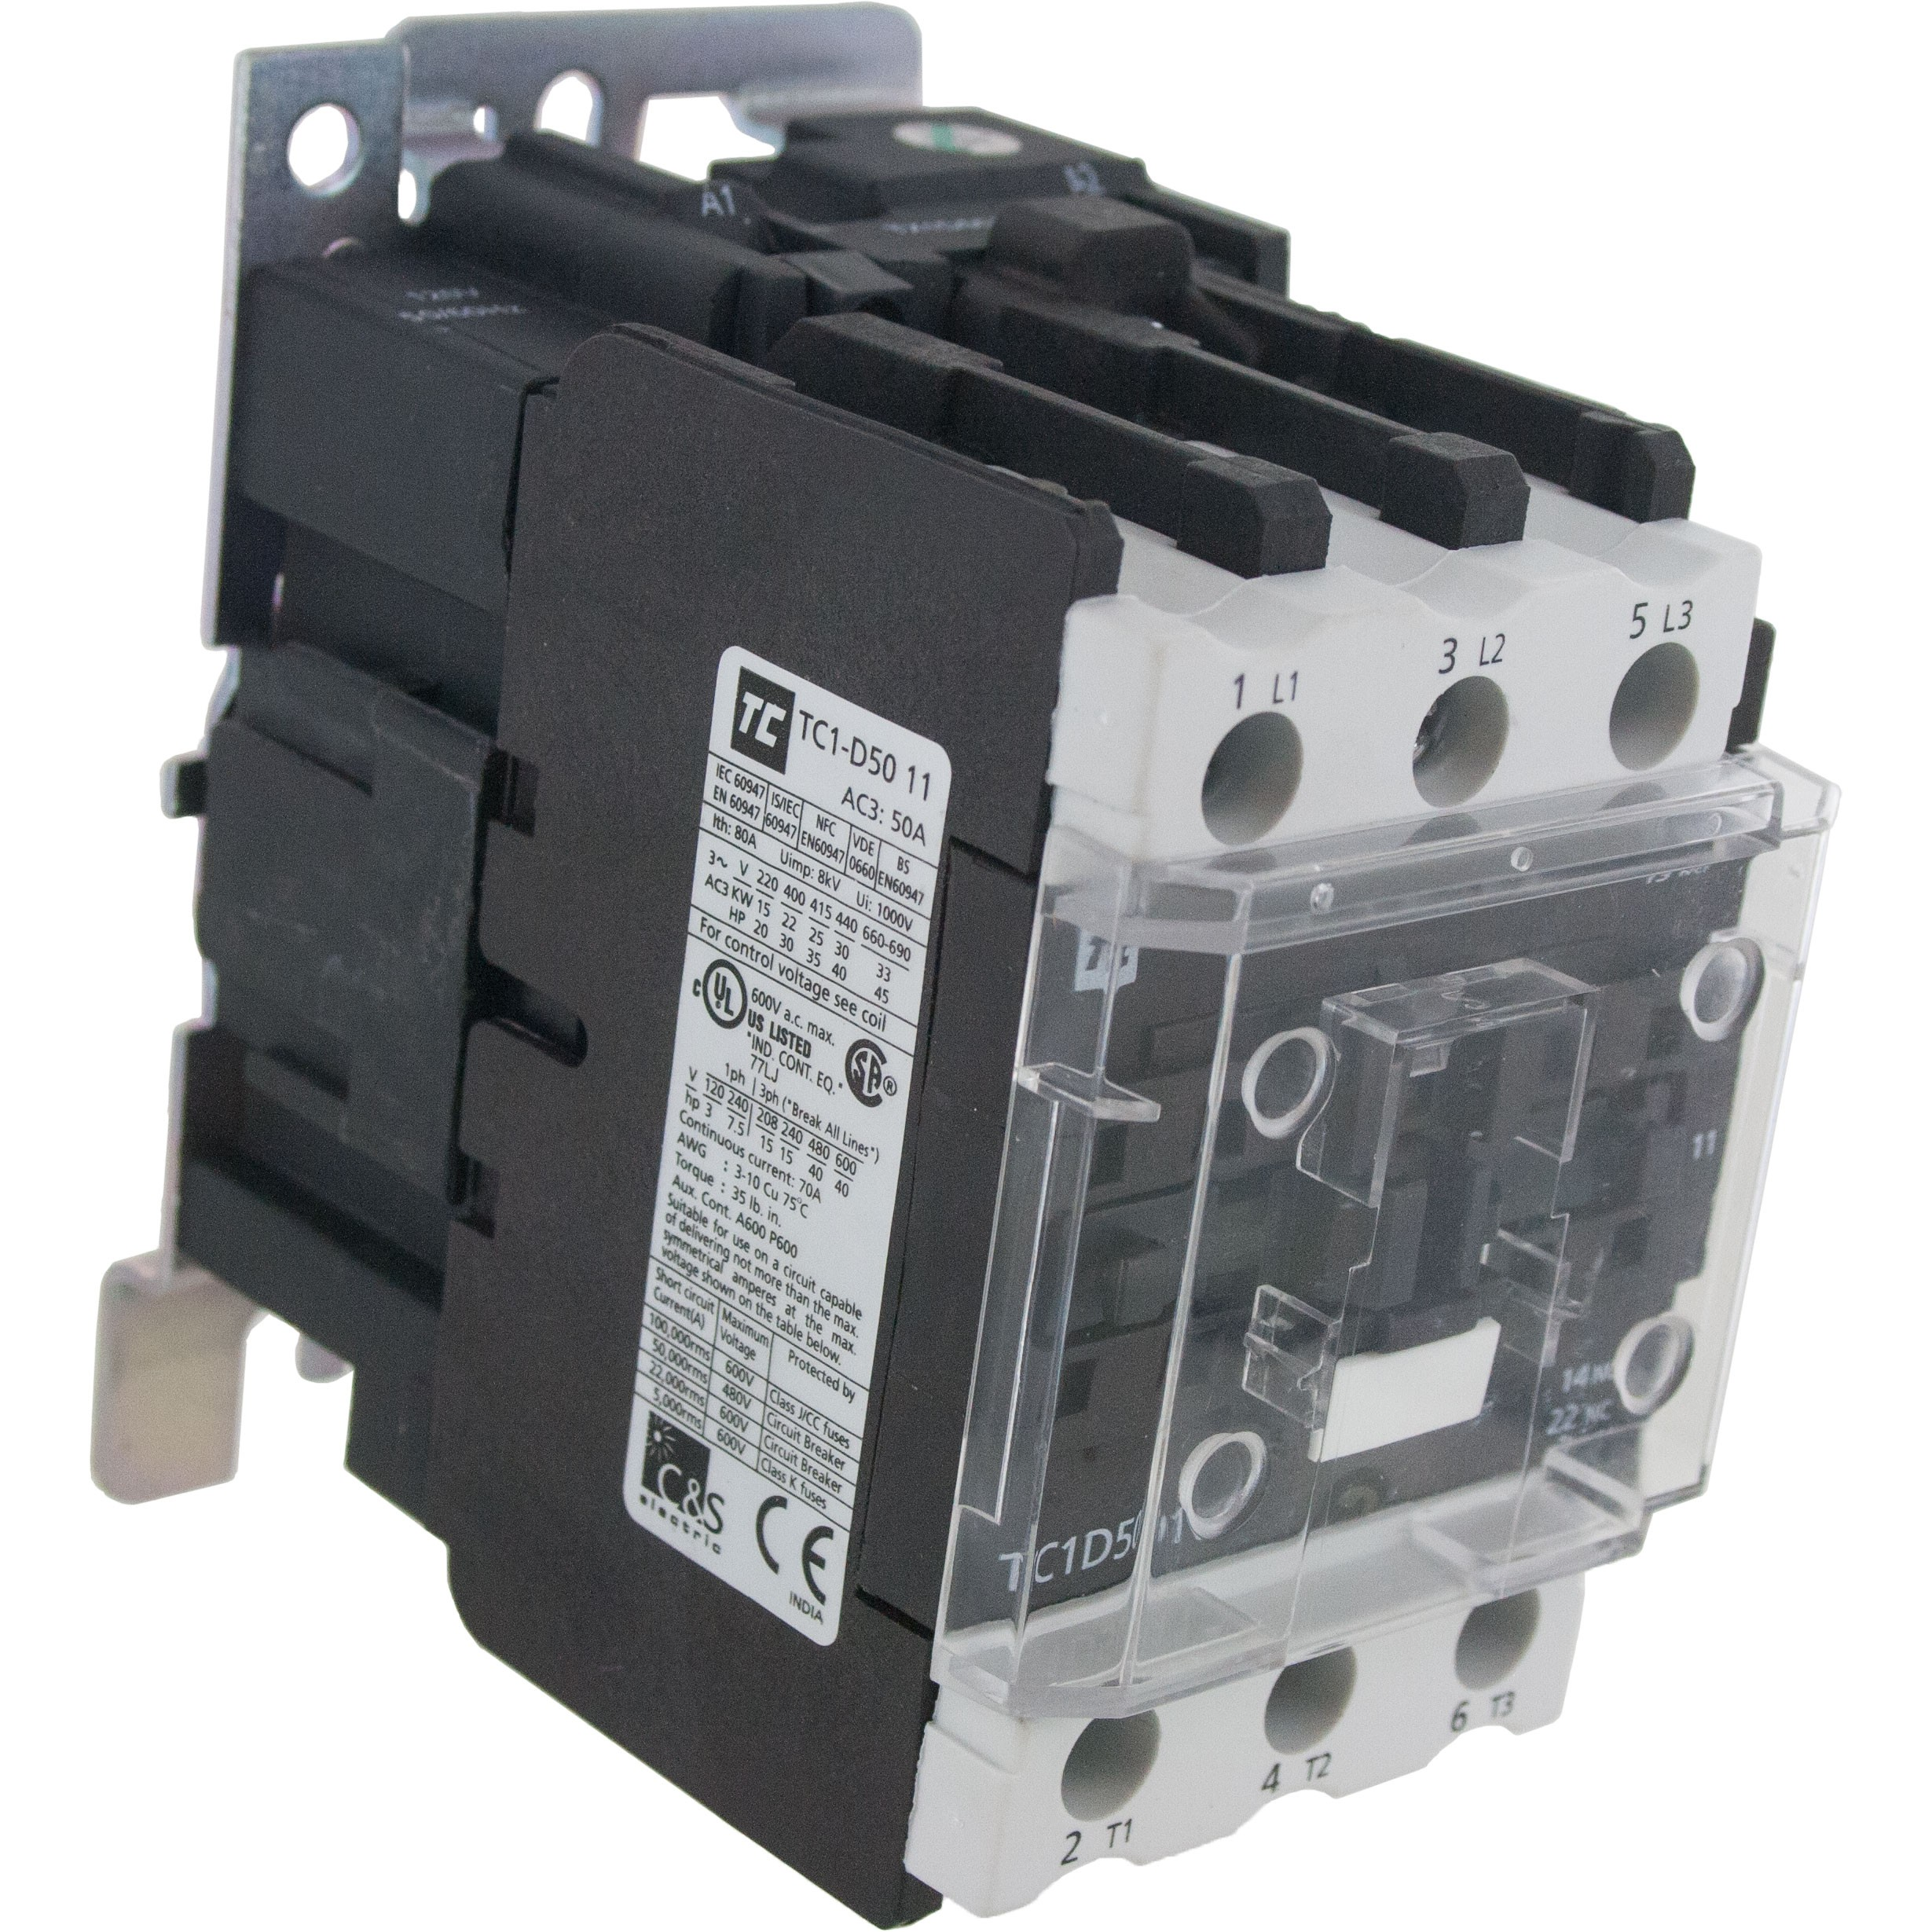 3 Pole Contactor 50 Amp 1 N/O - 1 N/C 600 Volt AC Coil Angle